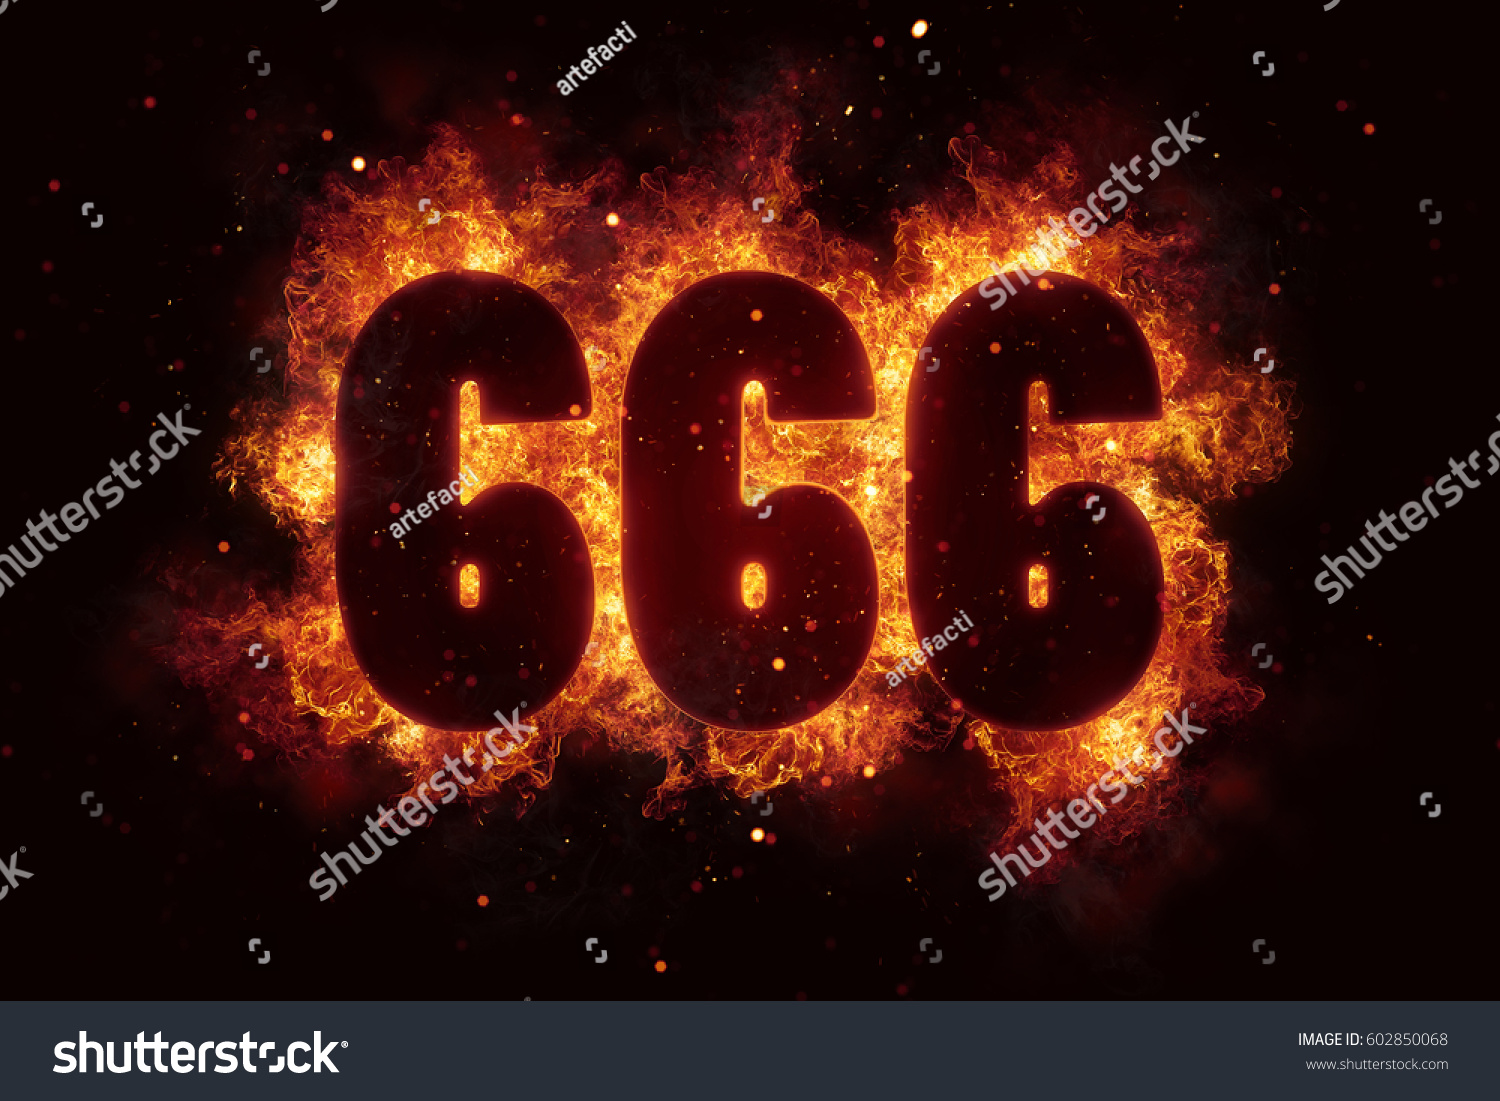 666 fire satanic sign gothic style stock illustration 602850068 666 fire satanic sign gothic style evil esoteric buycottarizona Image collections